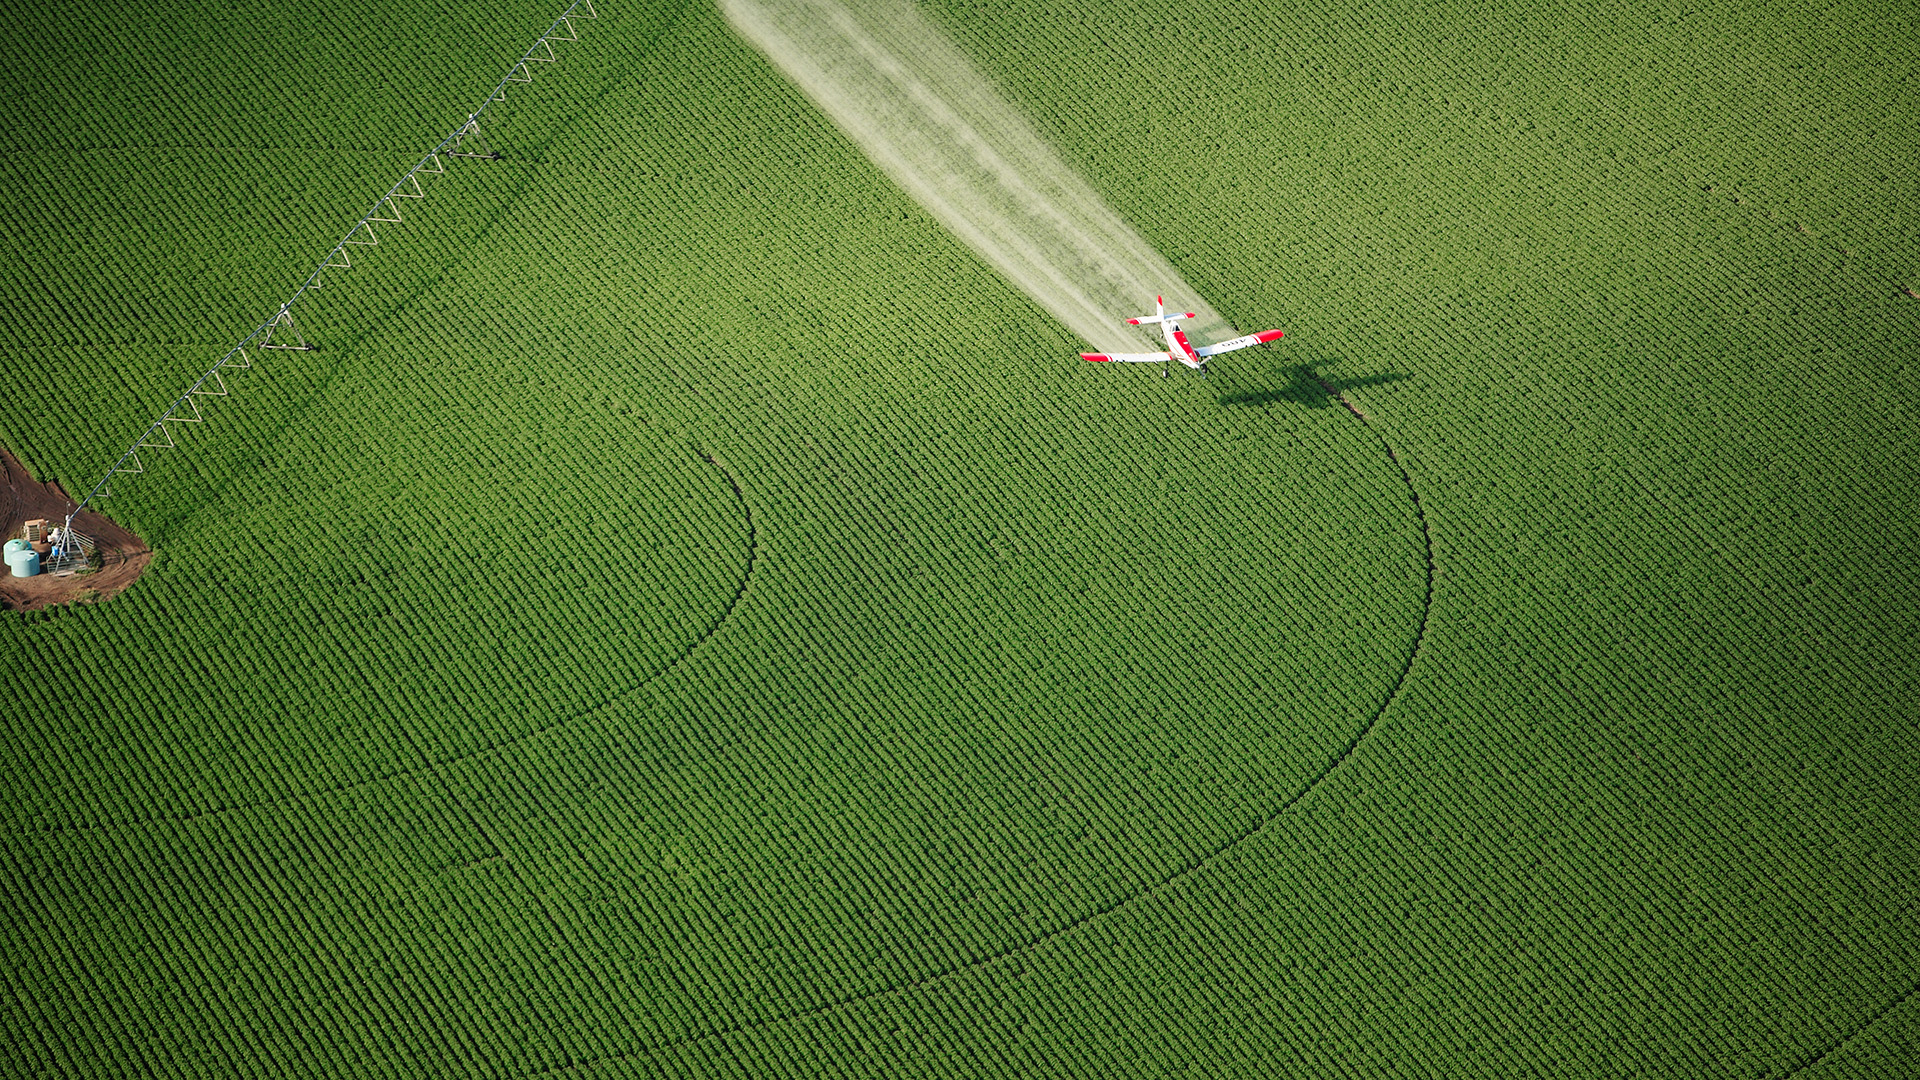 Image of a plane flying over a field